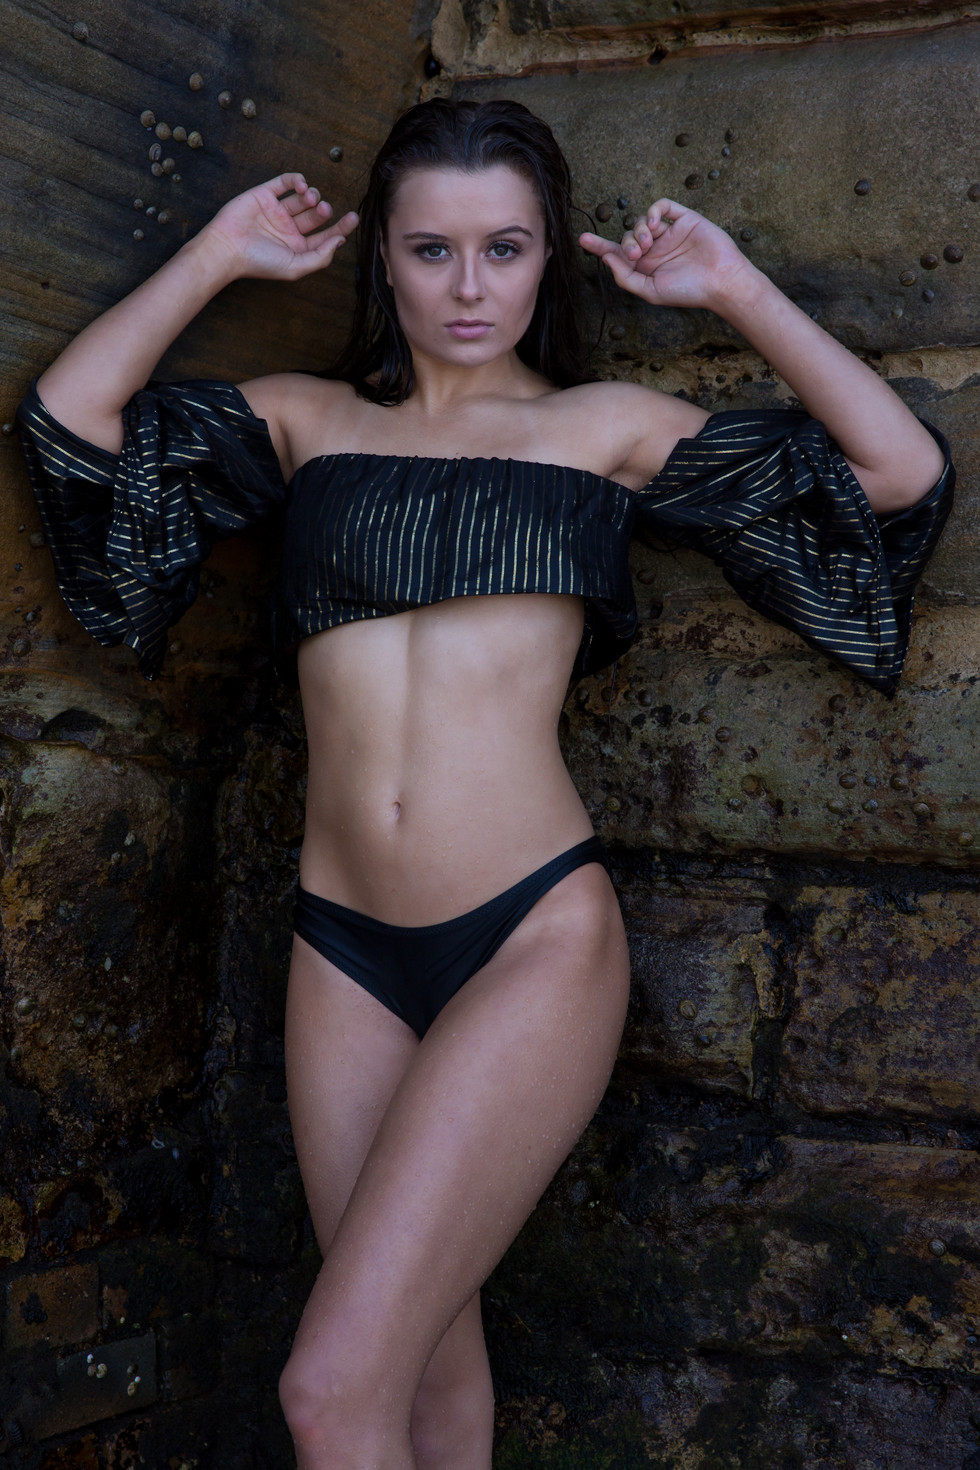 Alecia__by_CoogeePhotography-0104148.jpg